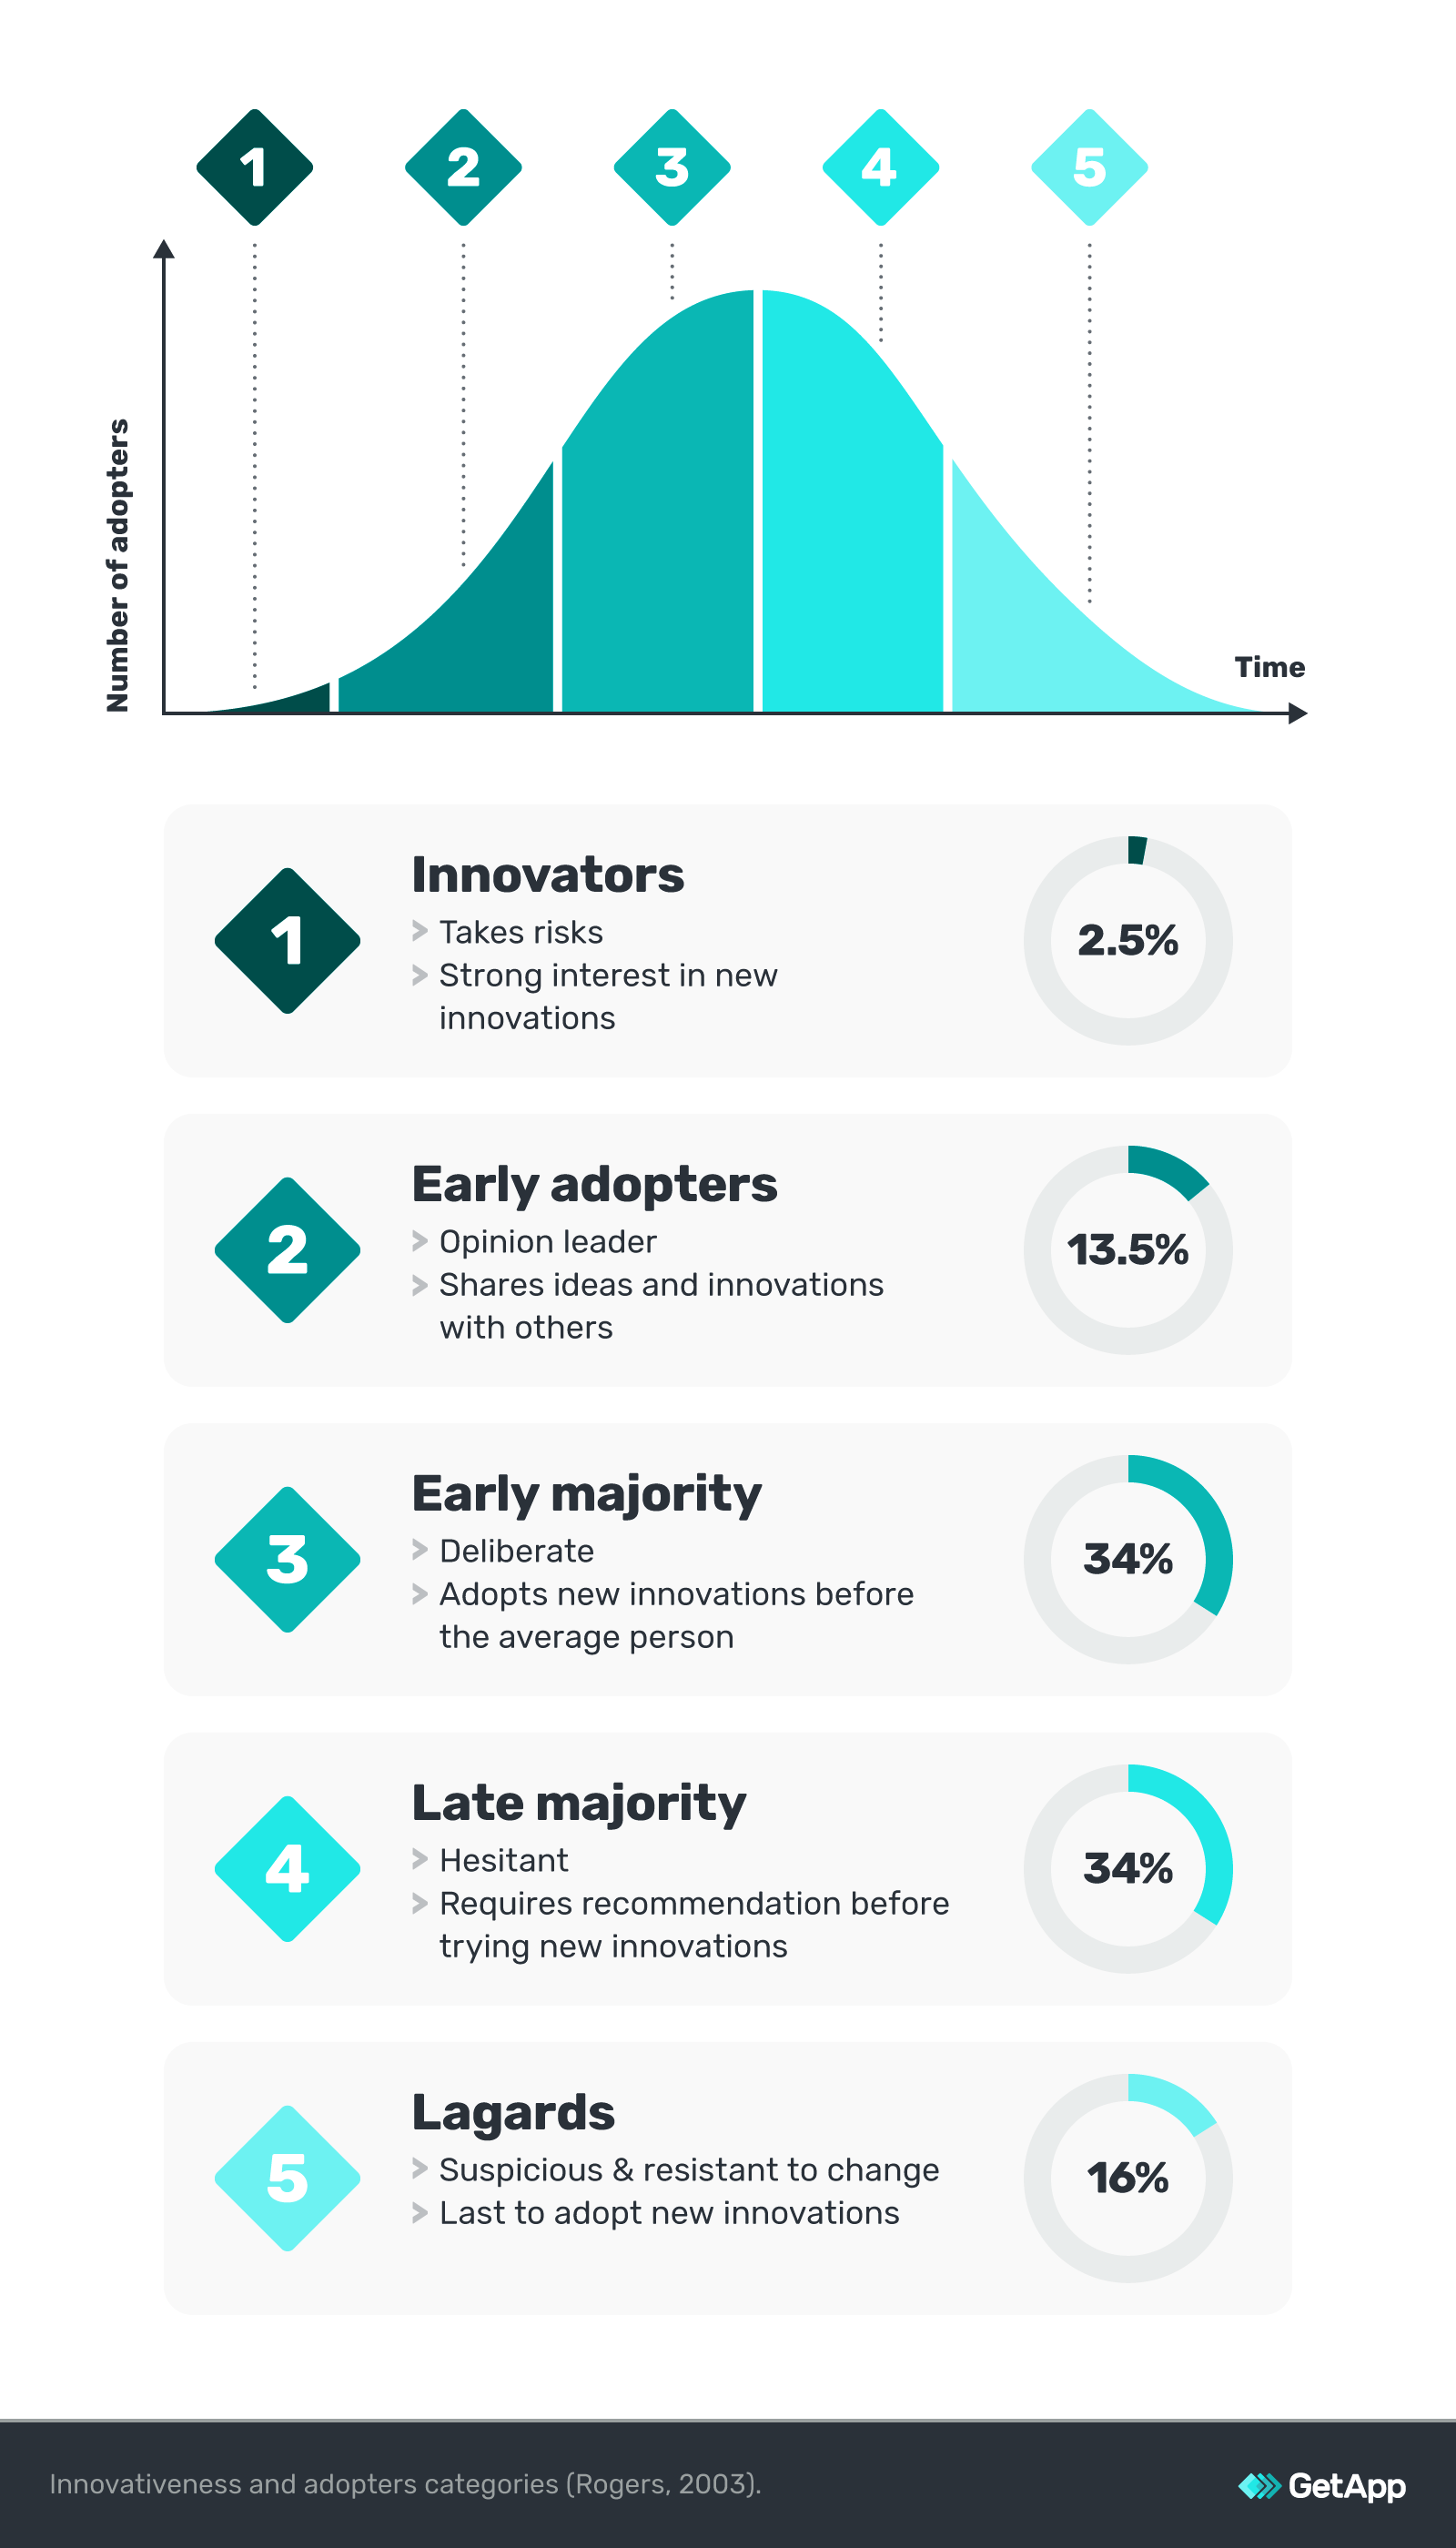 innovativeness-adopters-categories-rogers